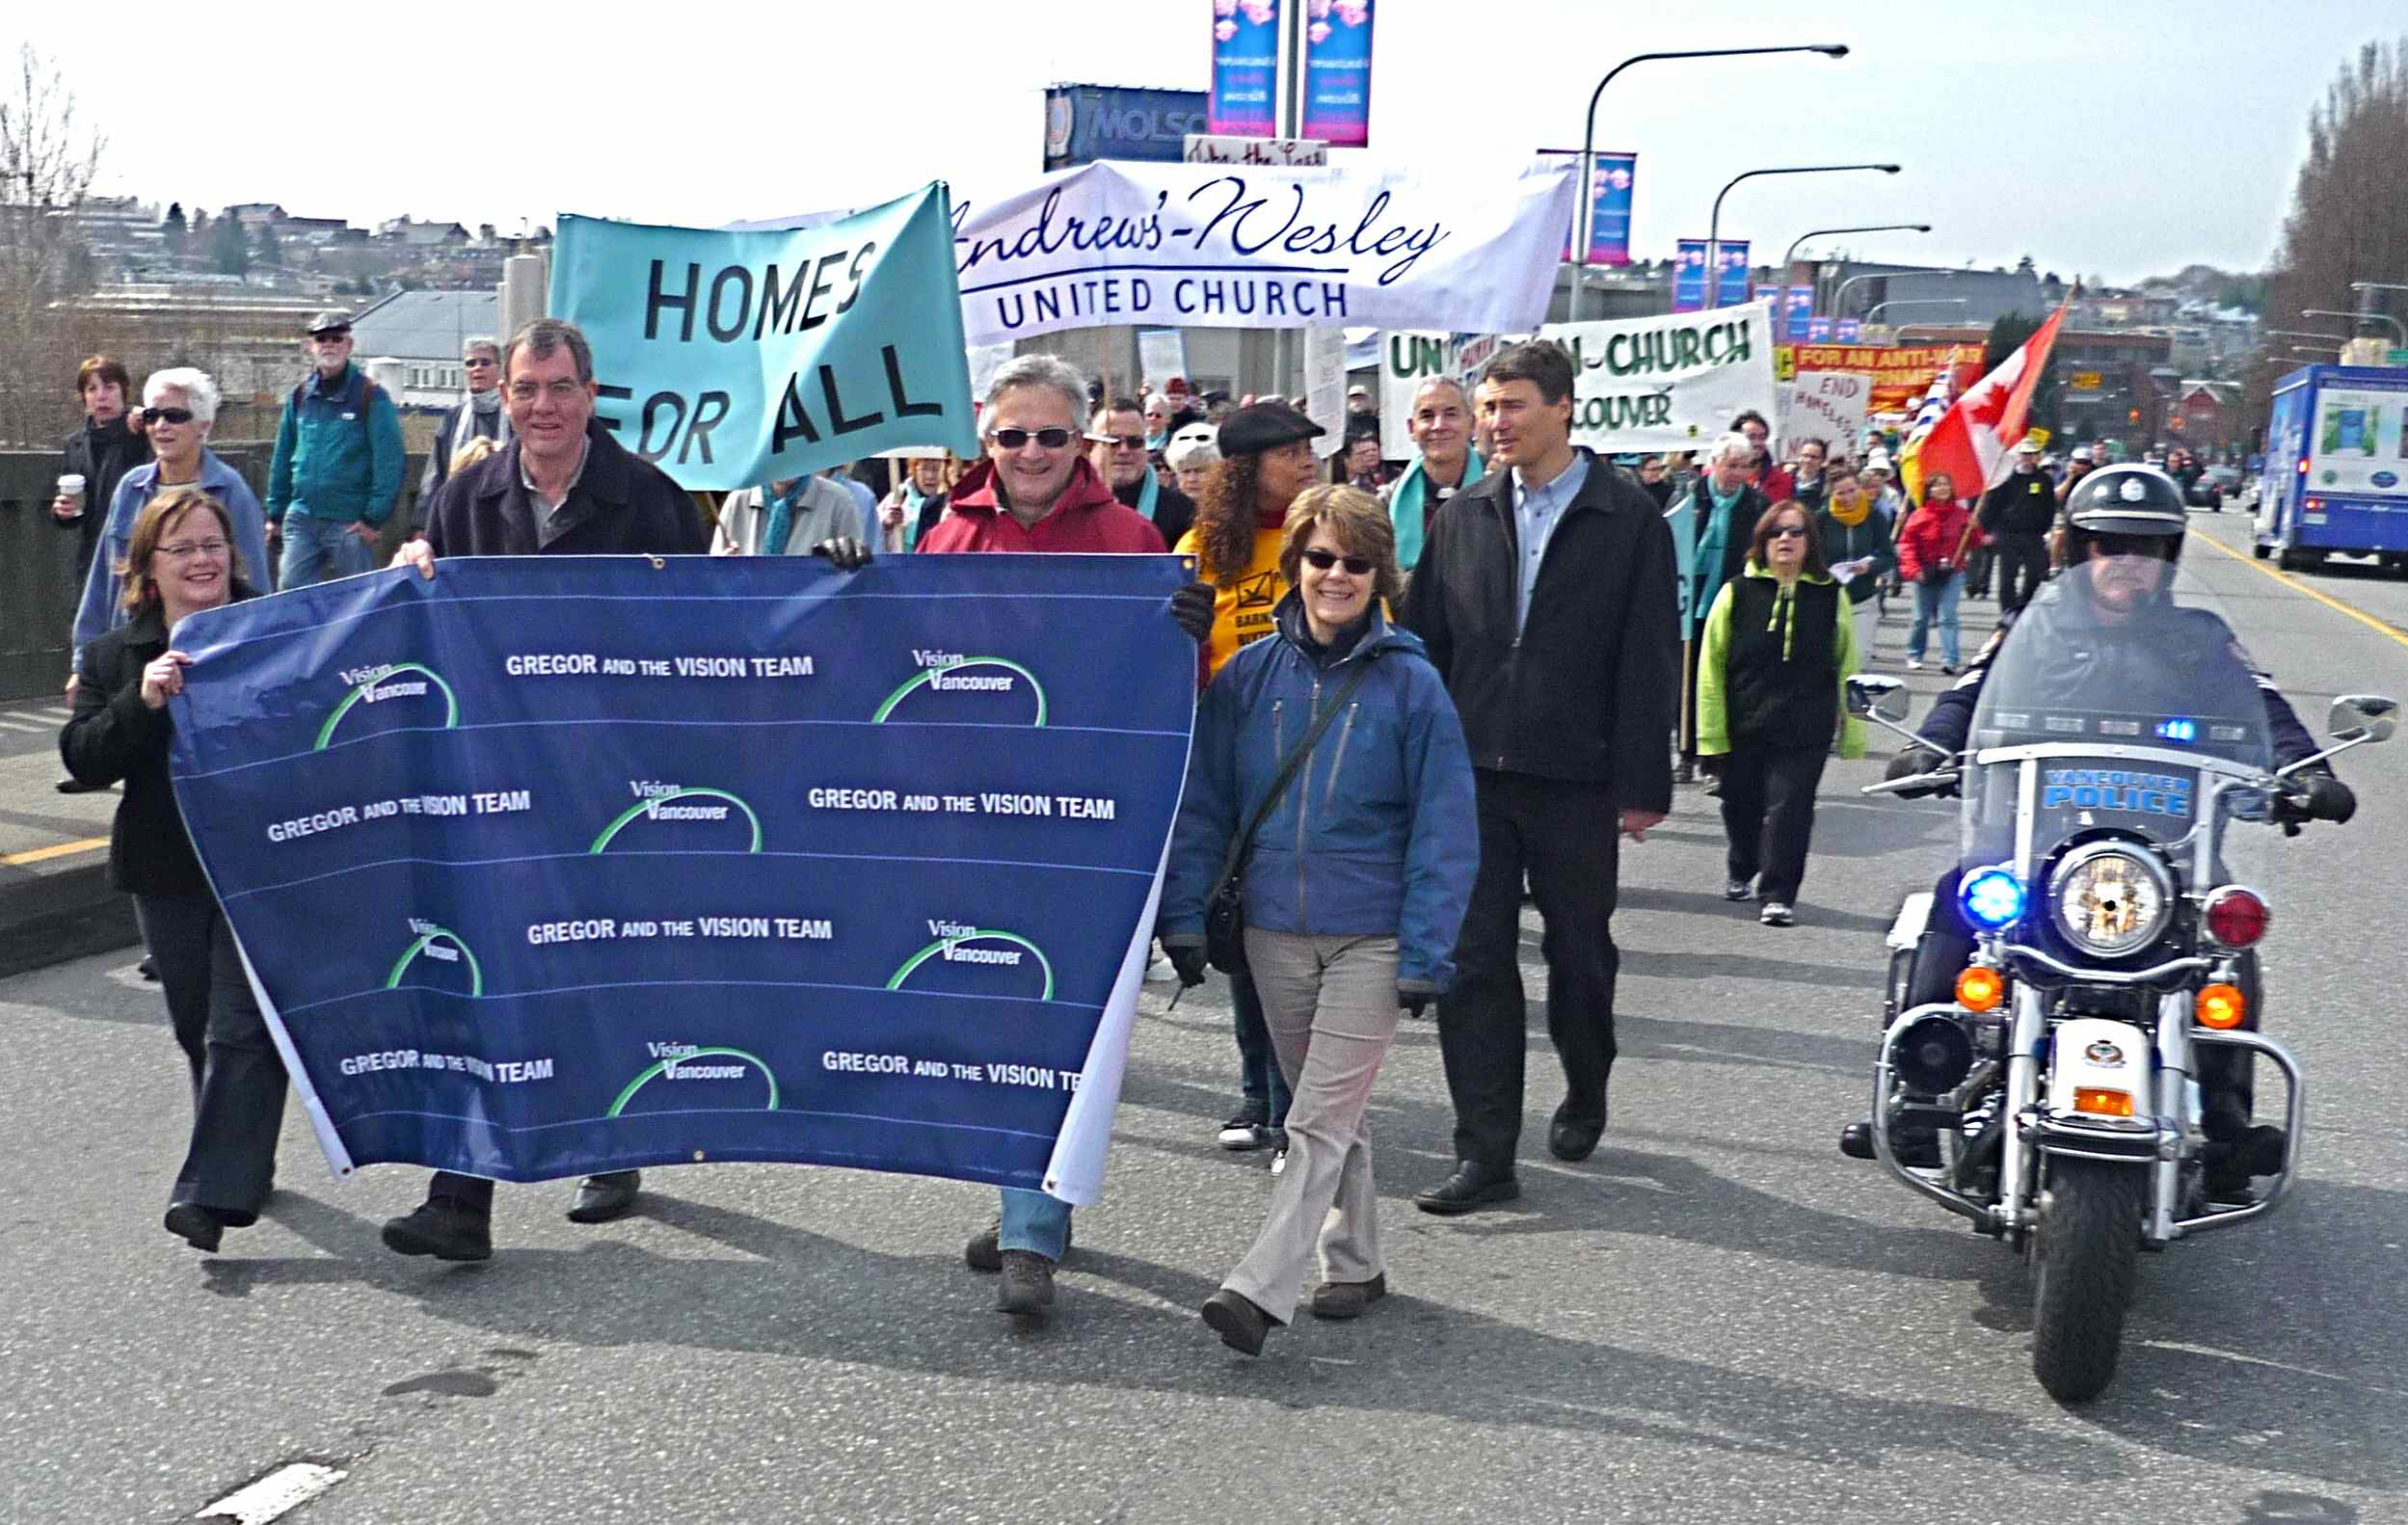 Vision marchers (left to right) Heather Deal, TIm Stevenson, Geoff Meggs, Jan O'Brien and Gregor Robertson.